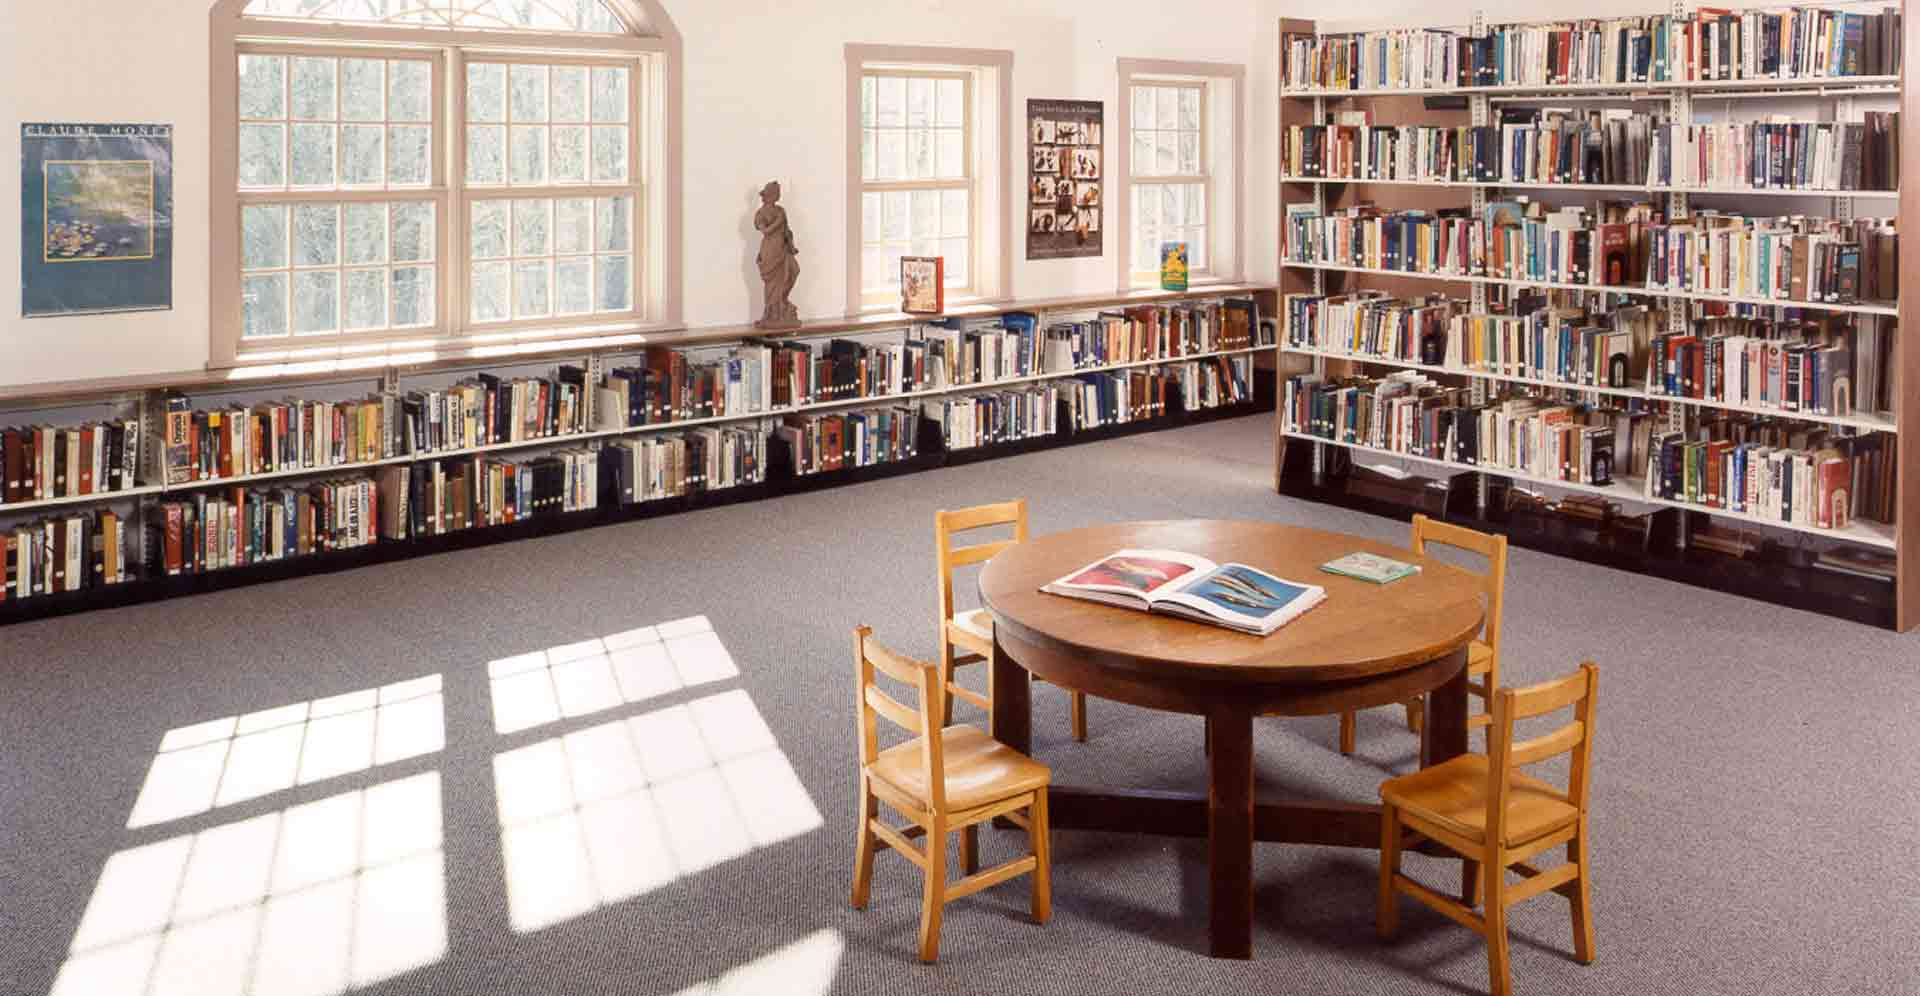 CHAPLIN-LIBRARY-AND-SENIOR-CENTER-LIBRARY-STACKS.jpg